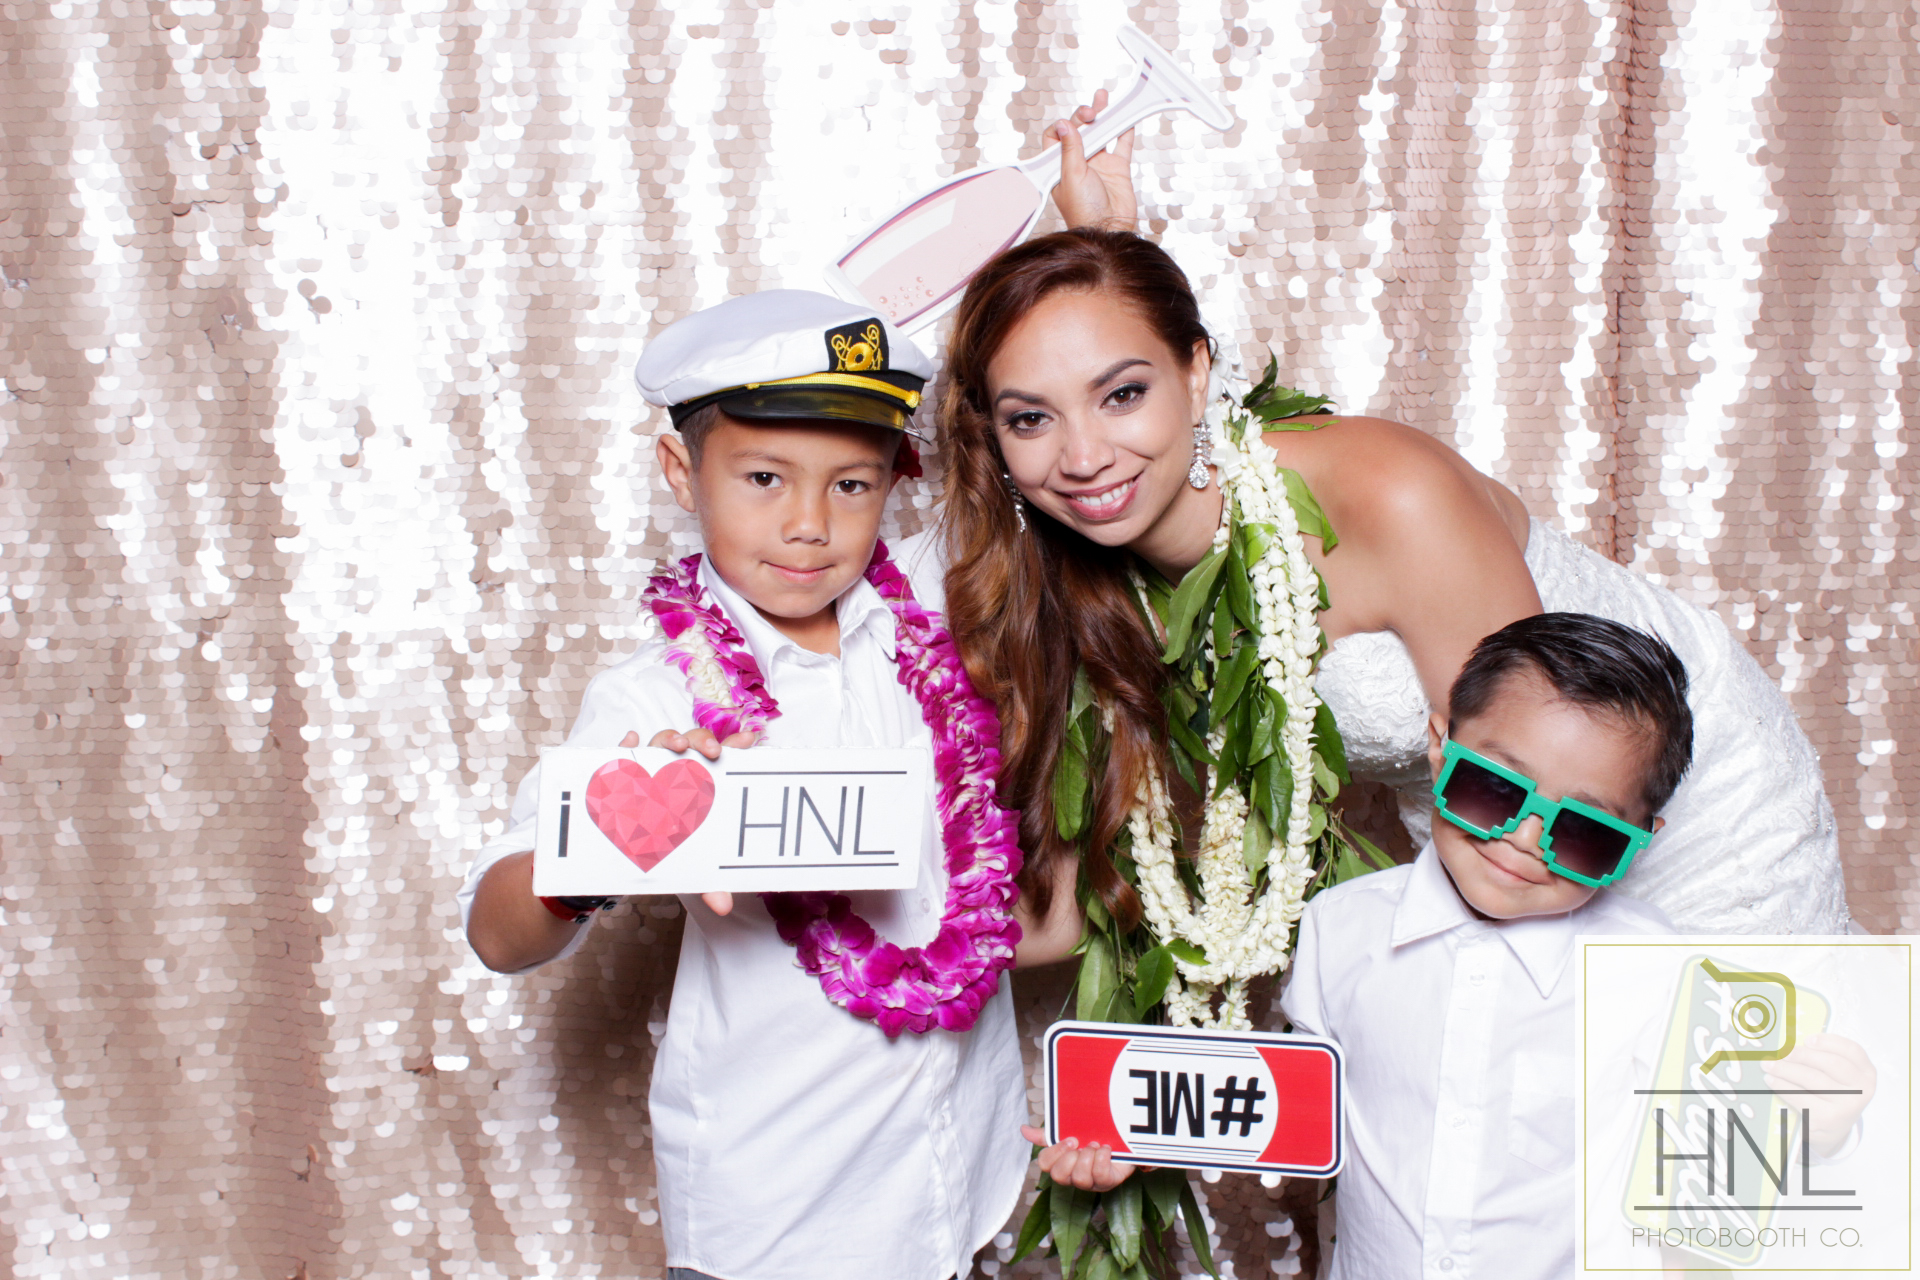 sea life park beach honolulu oahu wedding party photo booth rentals dj birthday parties photgraphy